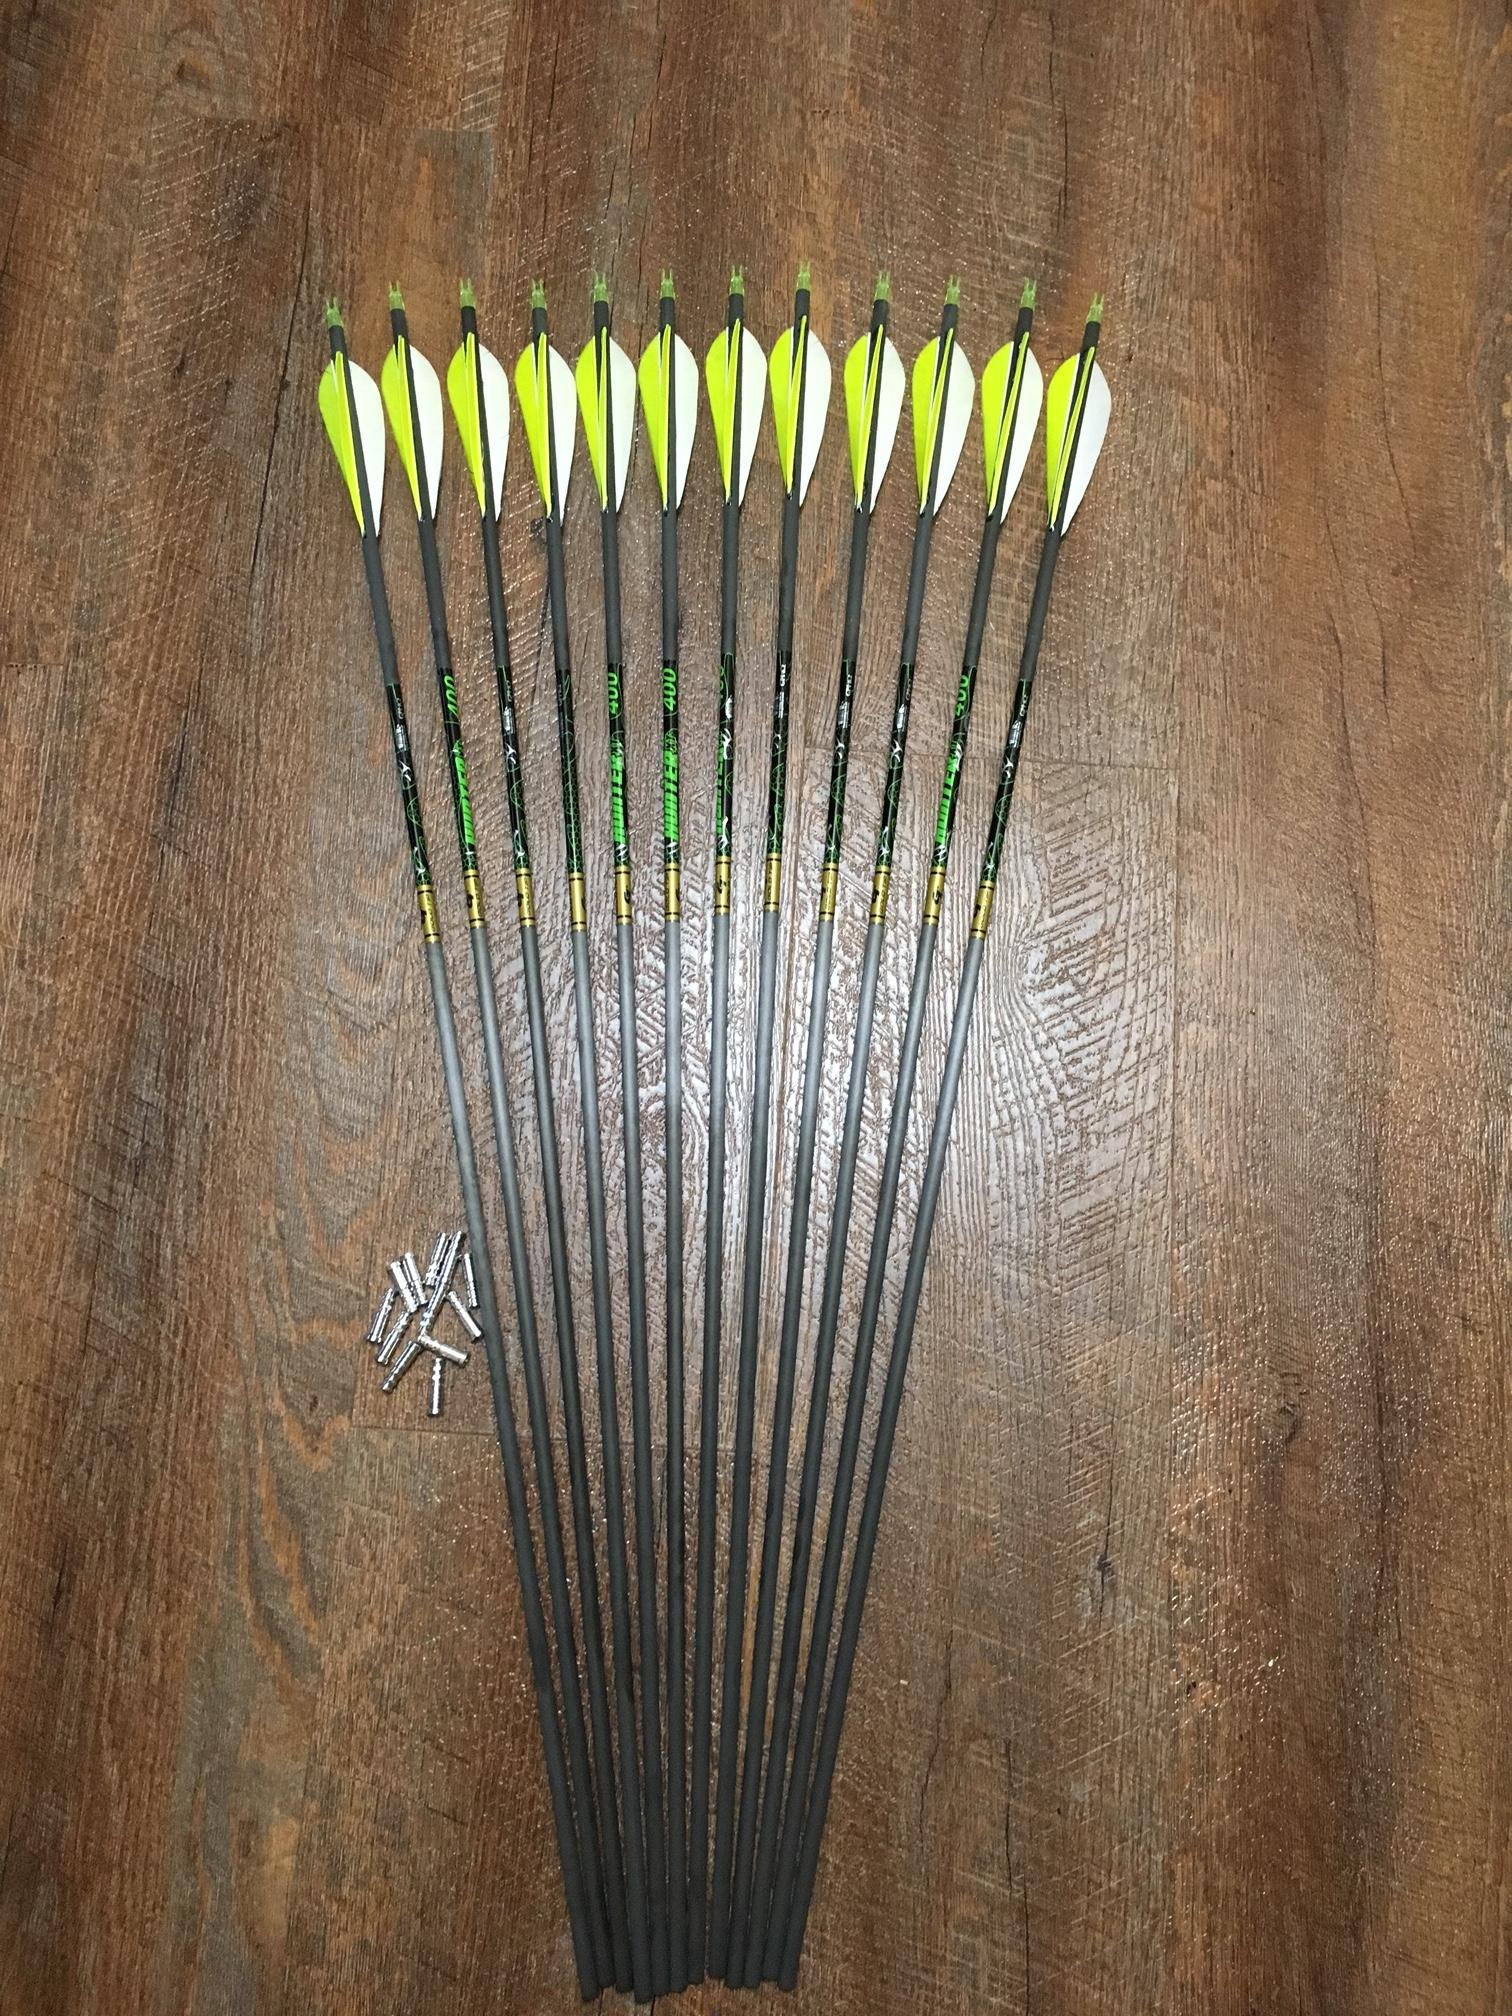 Gold Tip XT Hunter 340 Arrows With Parabolic Feathers Custom Made Set of 12